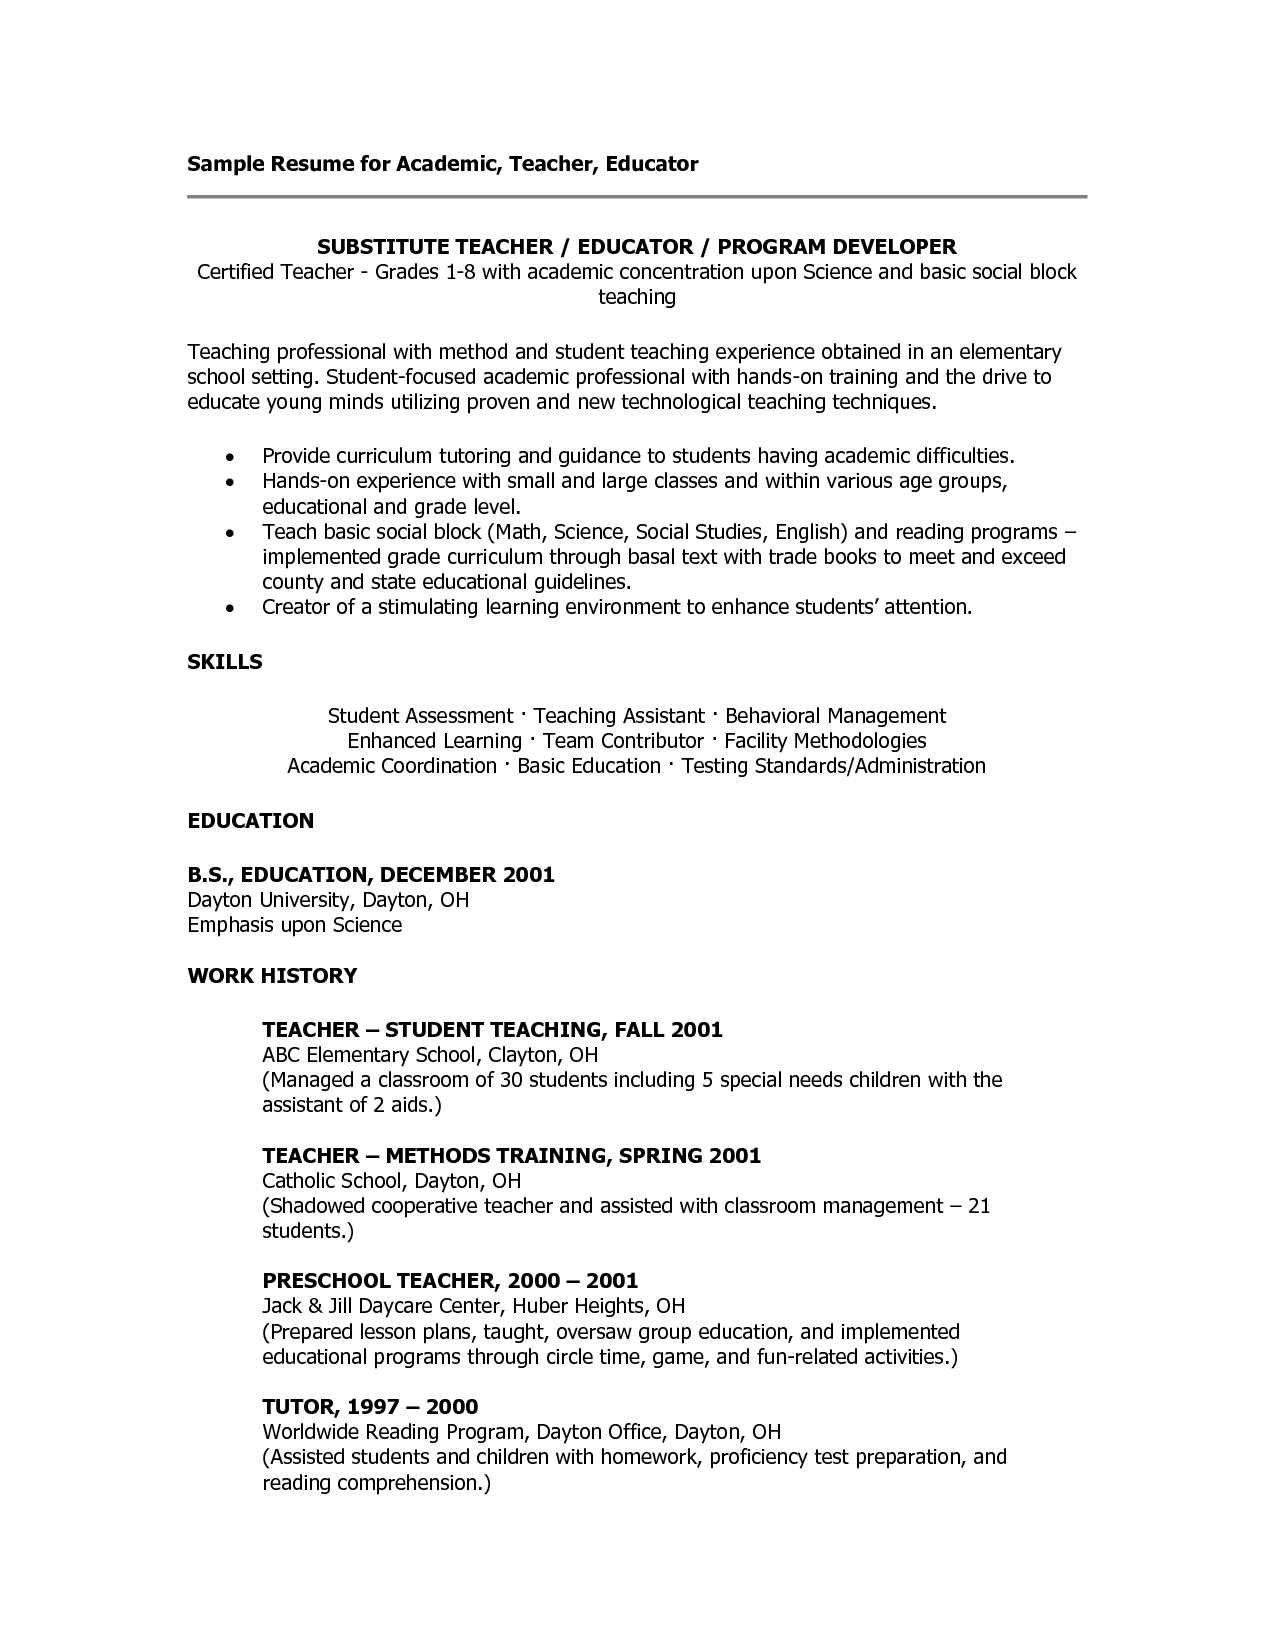 example english teacher resume cv style career sample teacher resumes substitute teacher resume